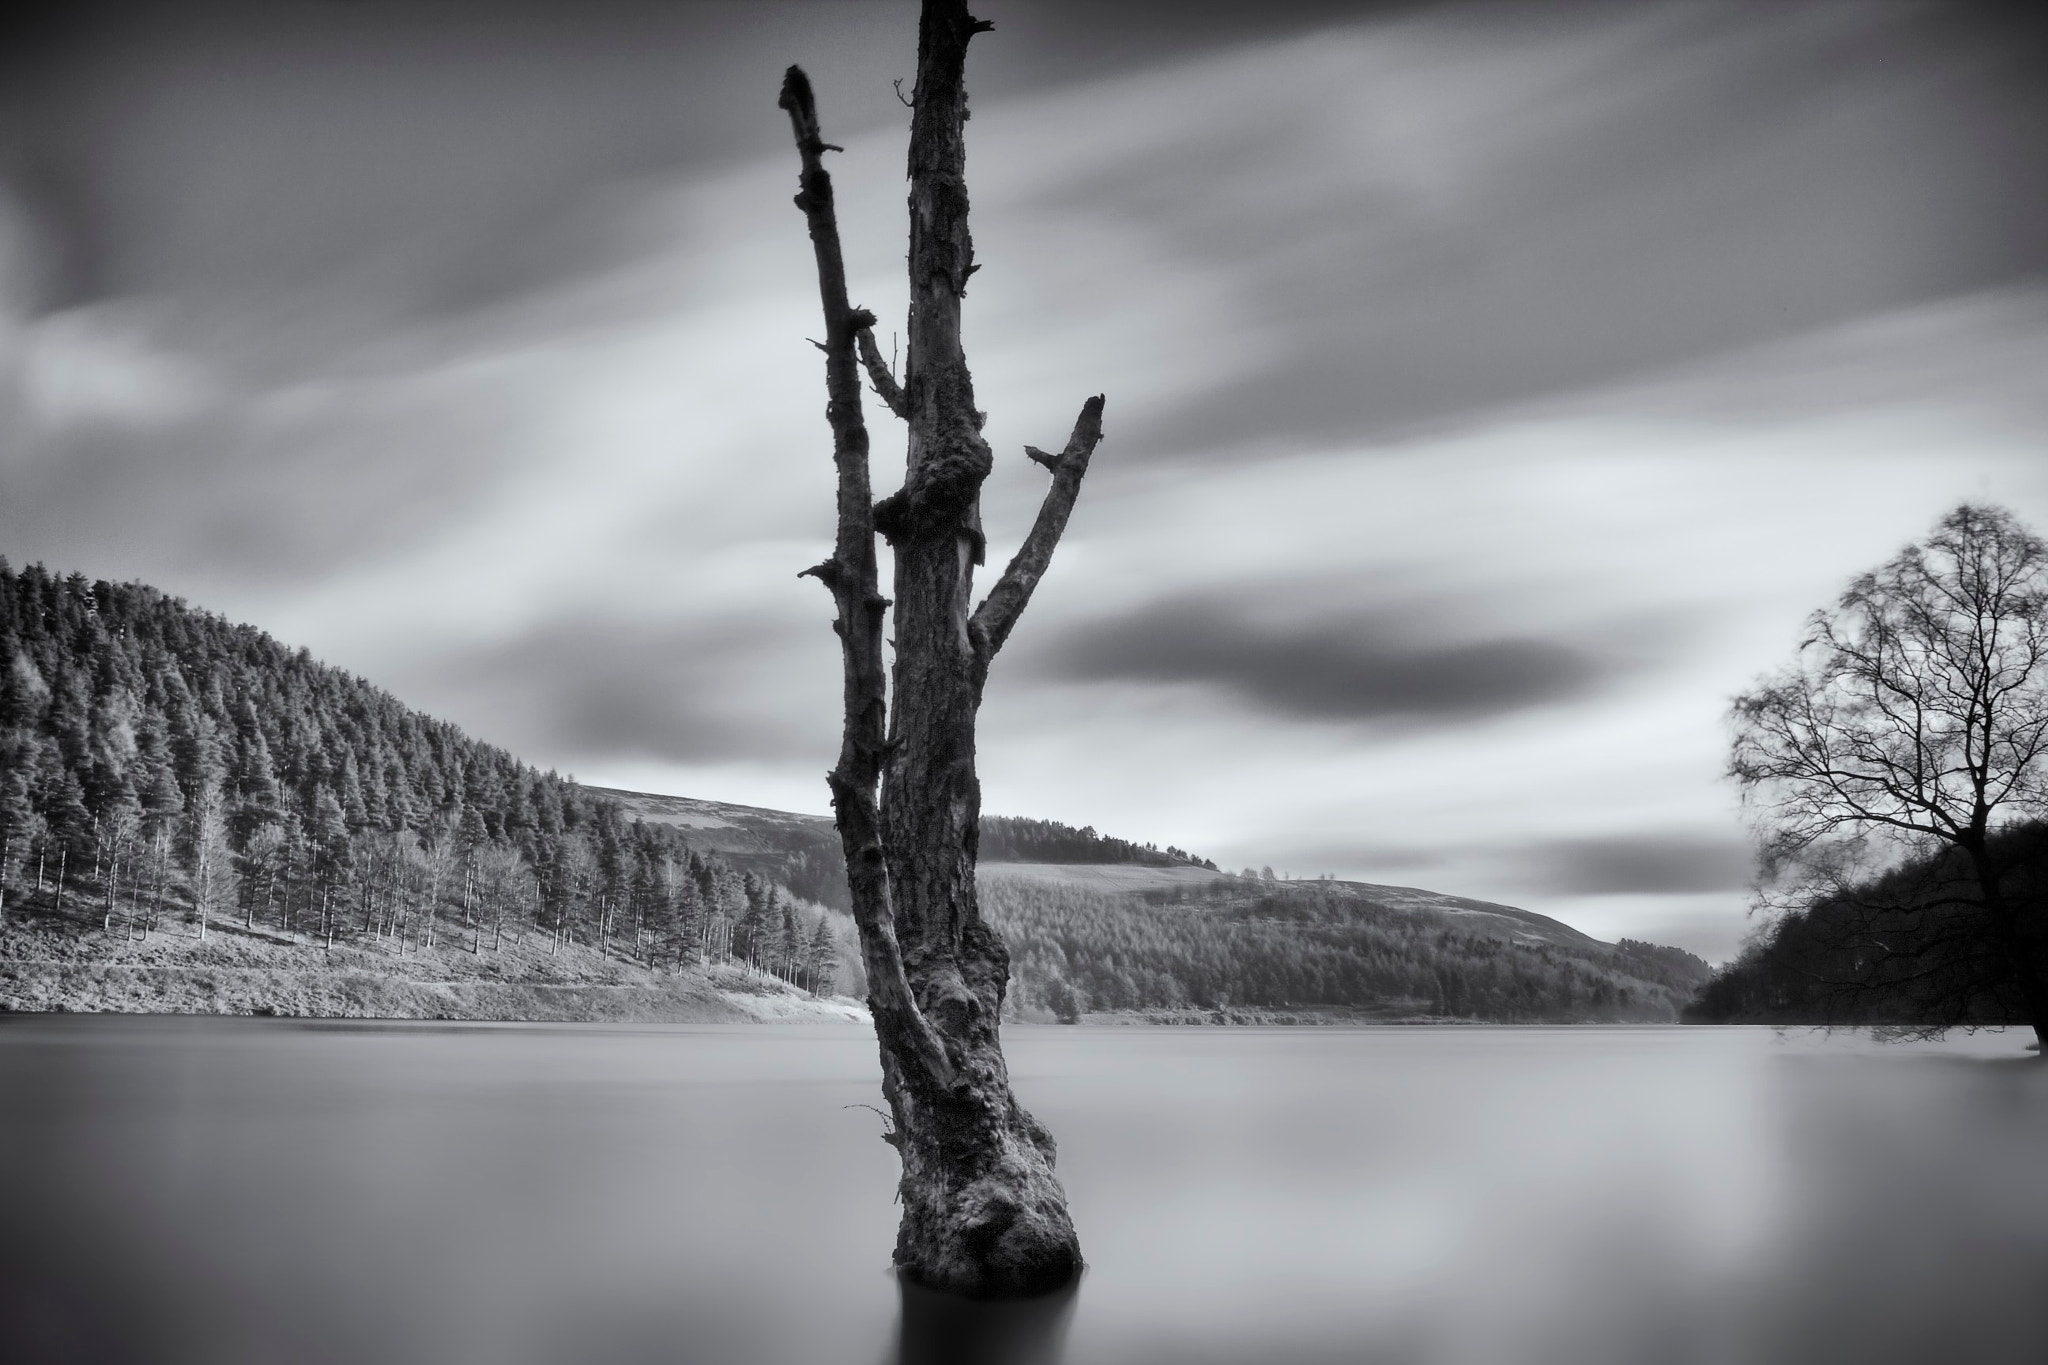 Photograph Reaching out II; Derwent Reservoir by Duncan Green on 500px